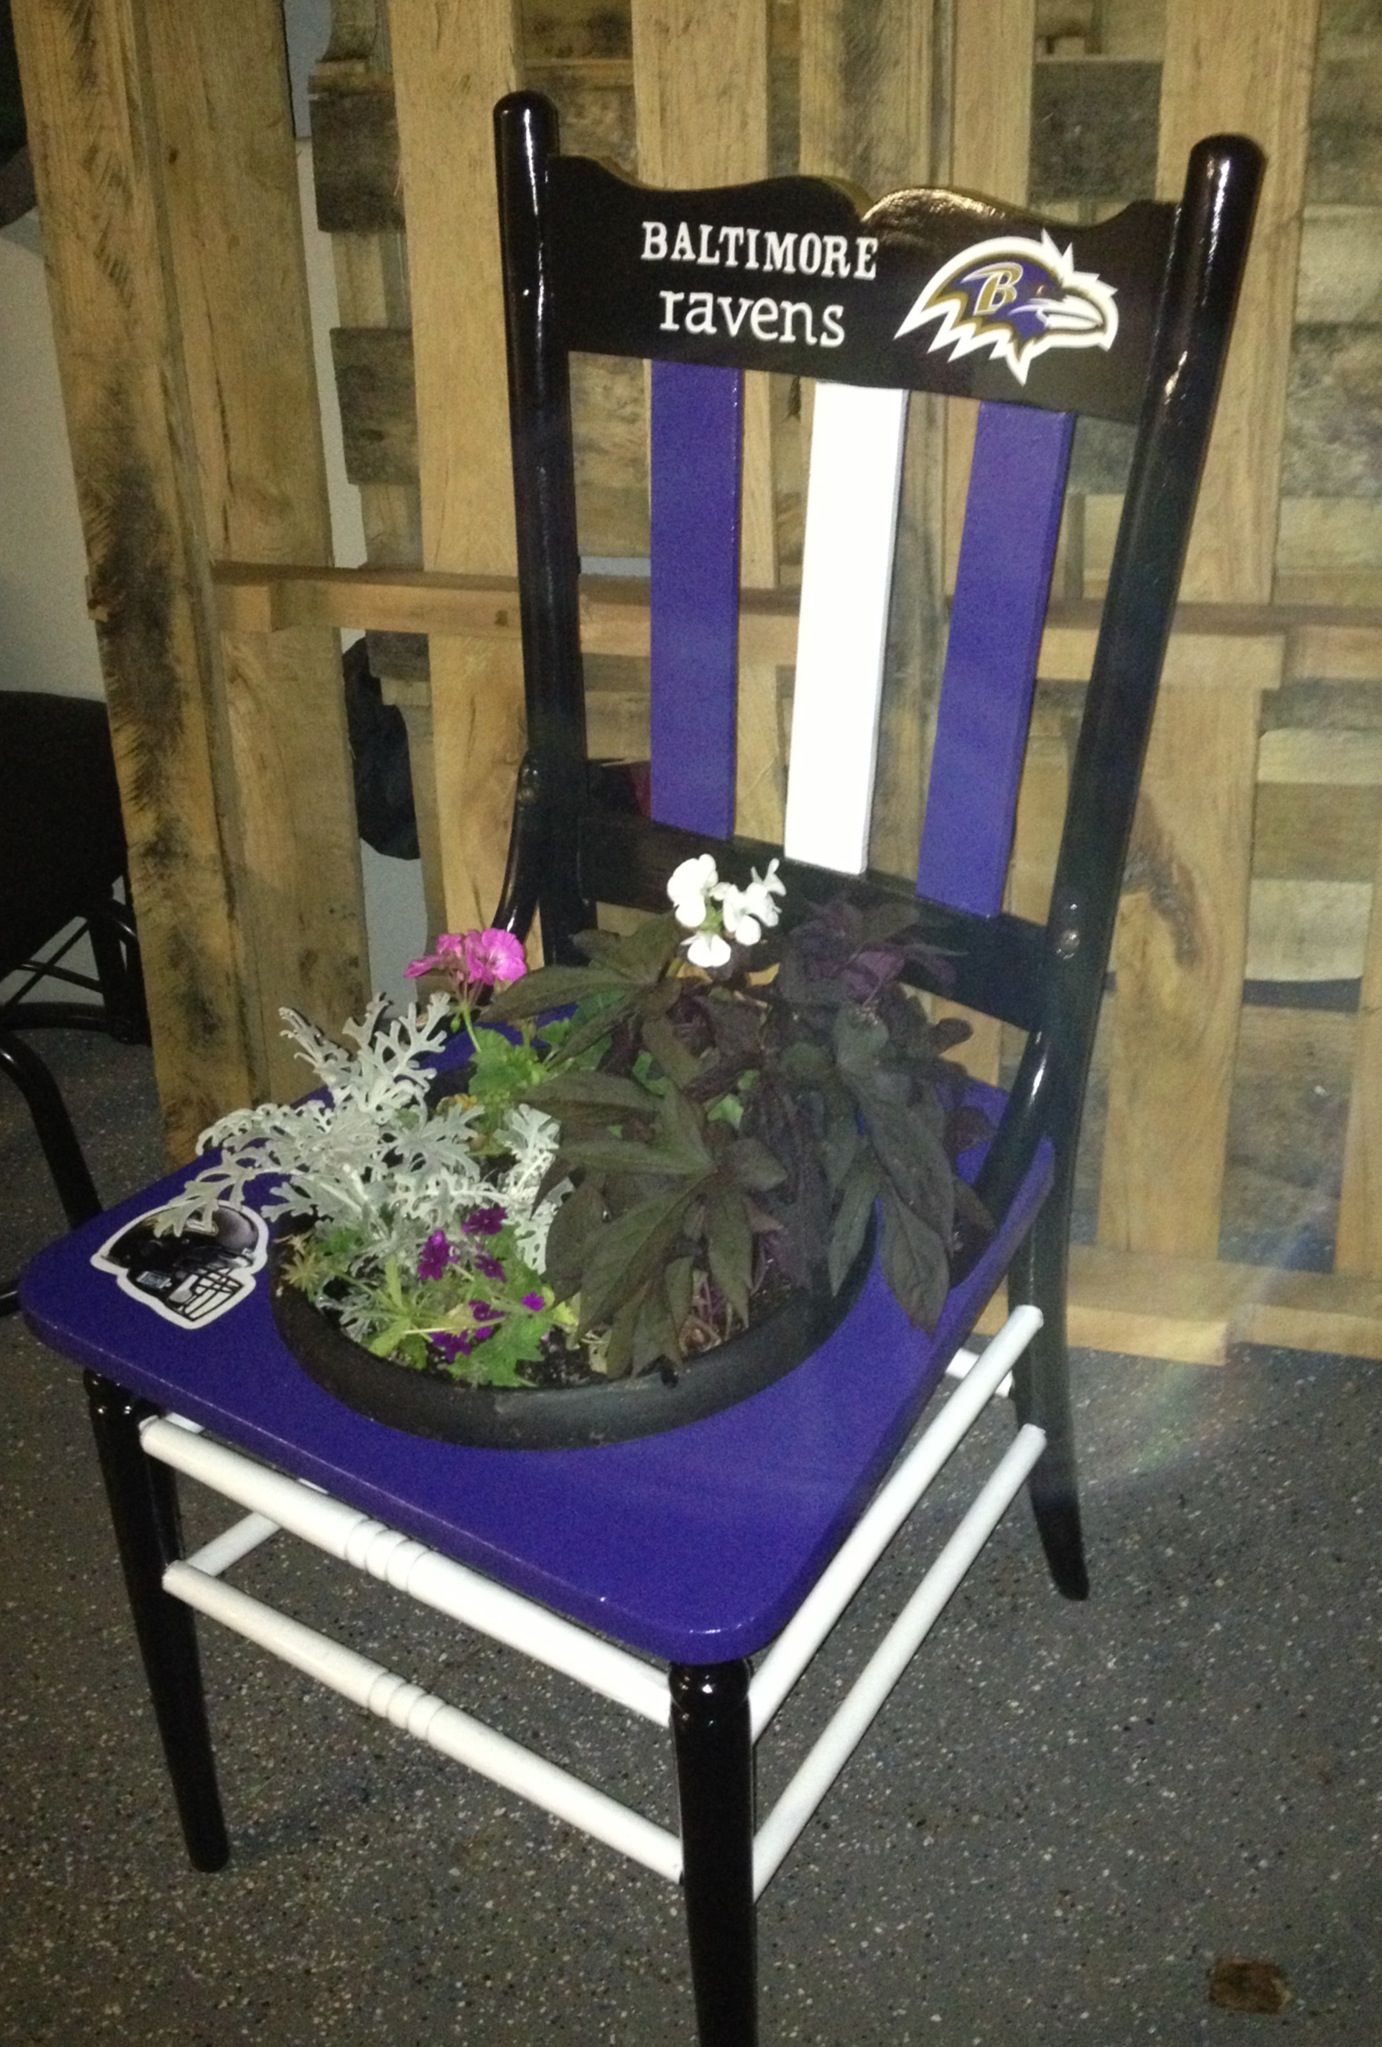 Beautiful Baltimore Ravens Chair/planter